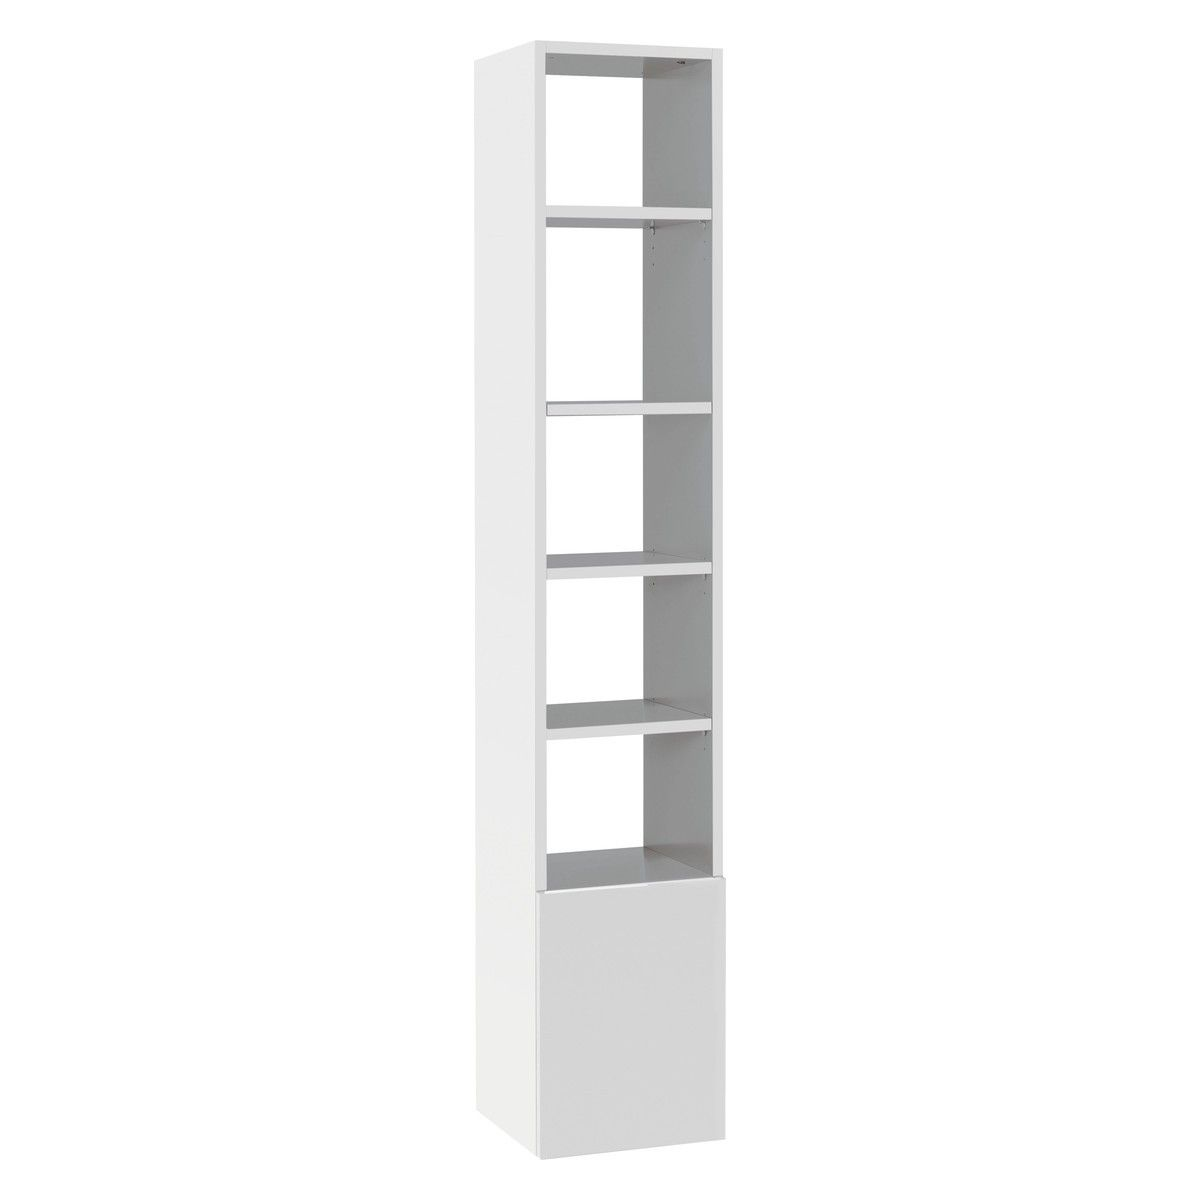 Kubrik White High Gloss Tall Shelving Unit Shelves Wooden Room